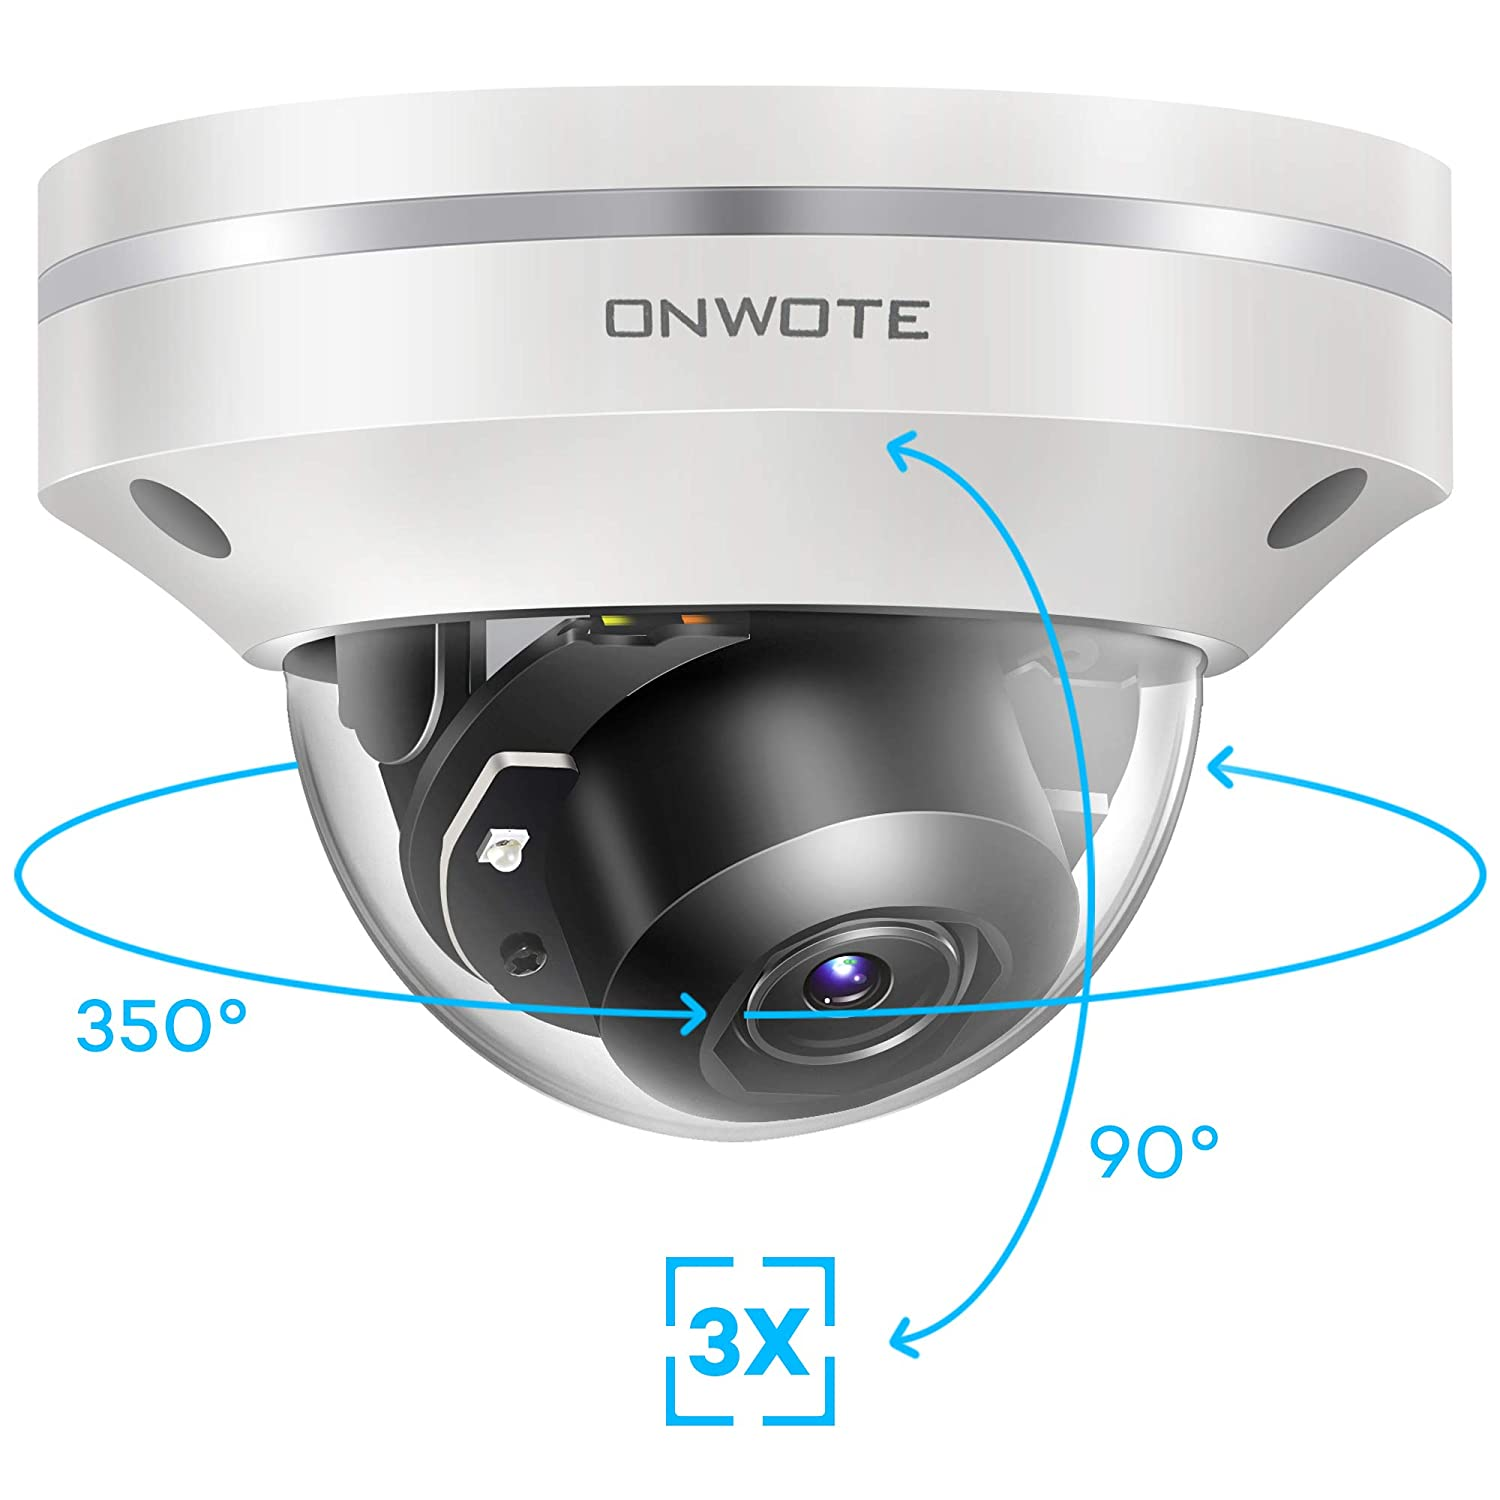 ONWOTE 5MP 2592 1944P HD PTZ PoE IP Security Camera Outdoor Dome, 350 Pan 90 Tilt 3X Optical Zoom Autofocus, 2.8-8mm Motorized Lens, IP66 Waterproof, 5 Megapixels Super HD Onvif Ethernet Camera